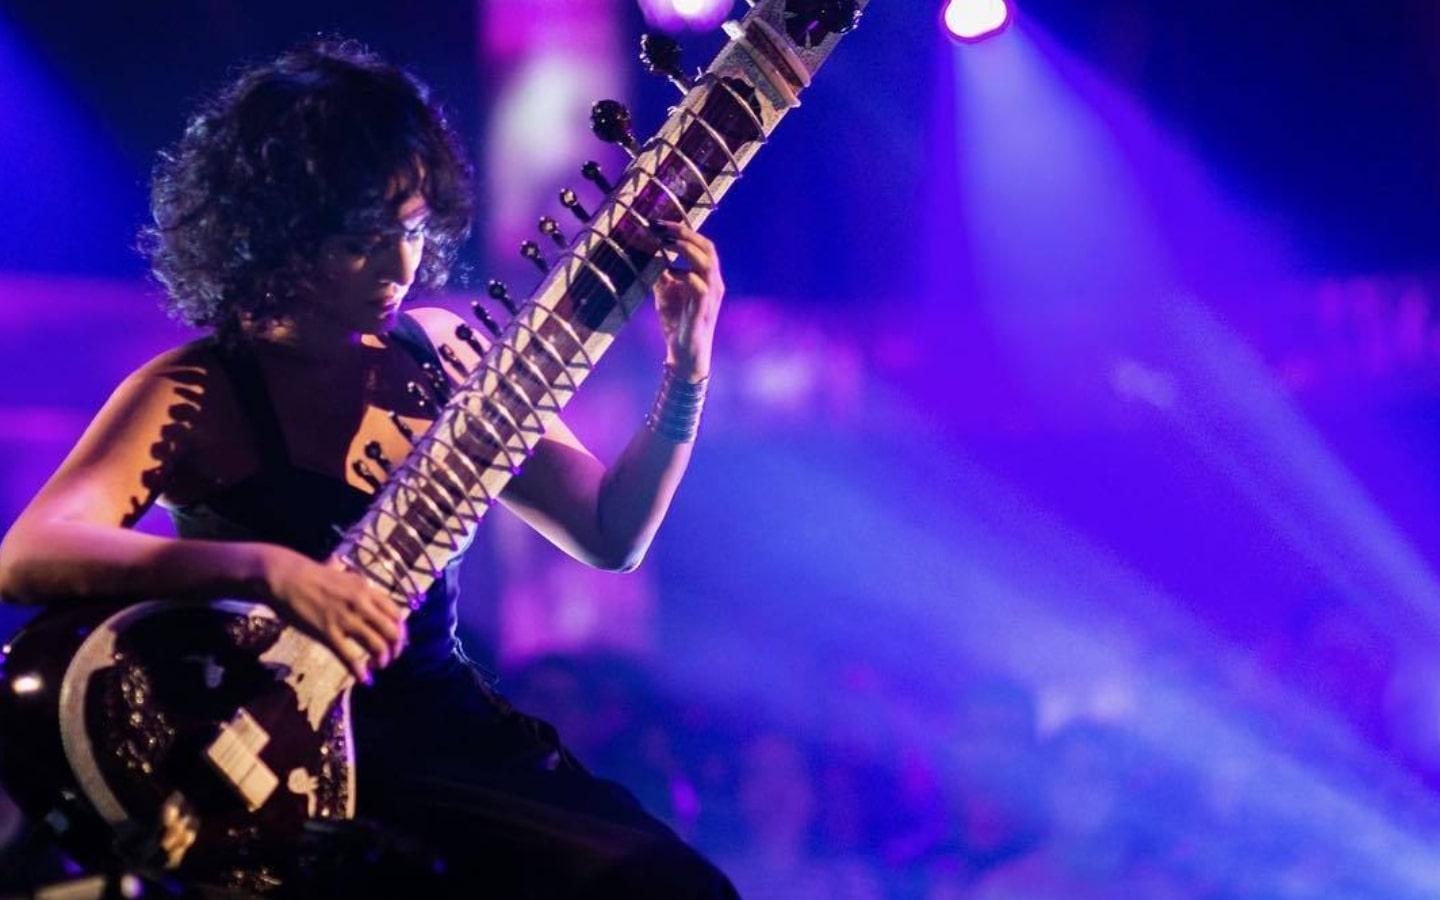 Anoushka Shankar playing sitar on stage, performer at one of the upcoming Dubai Opera house upcoming events